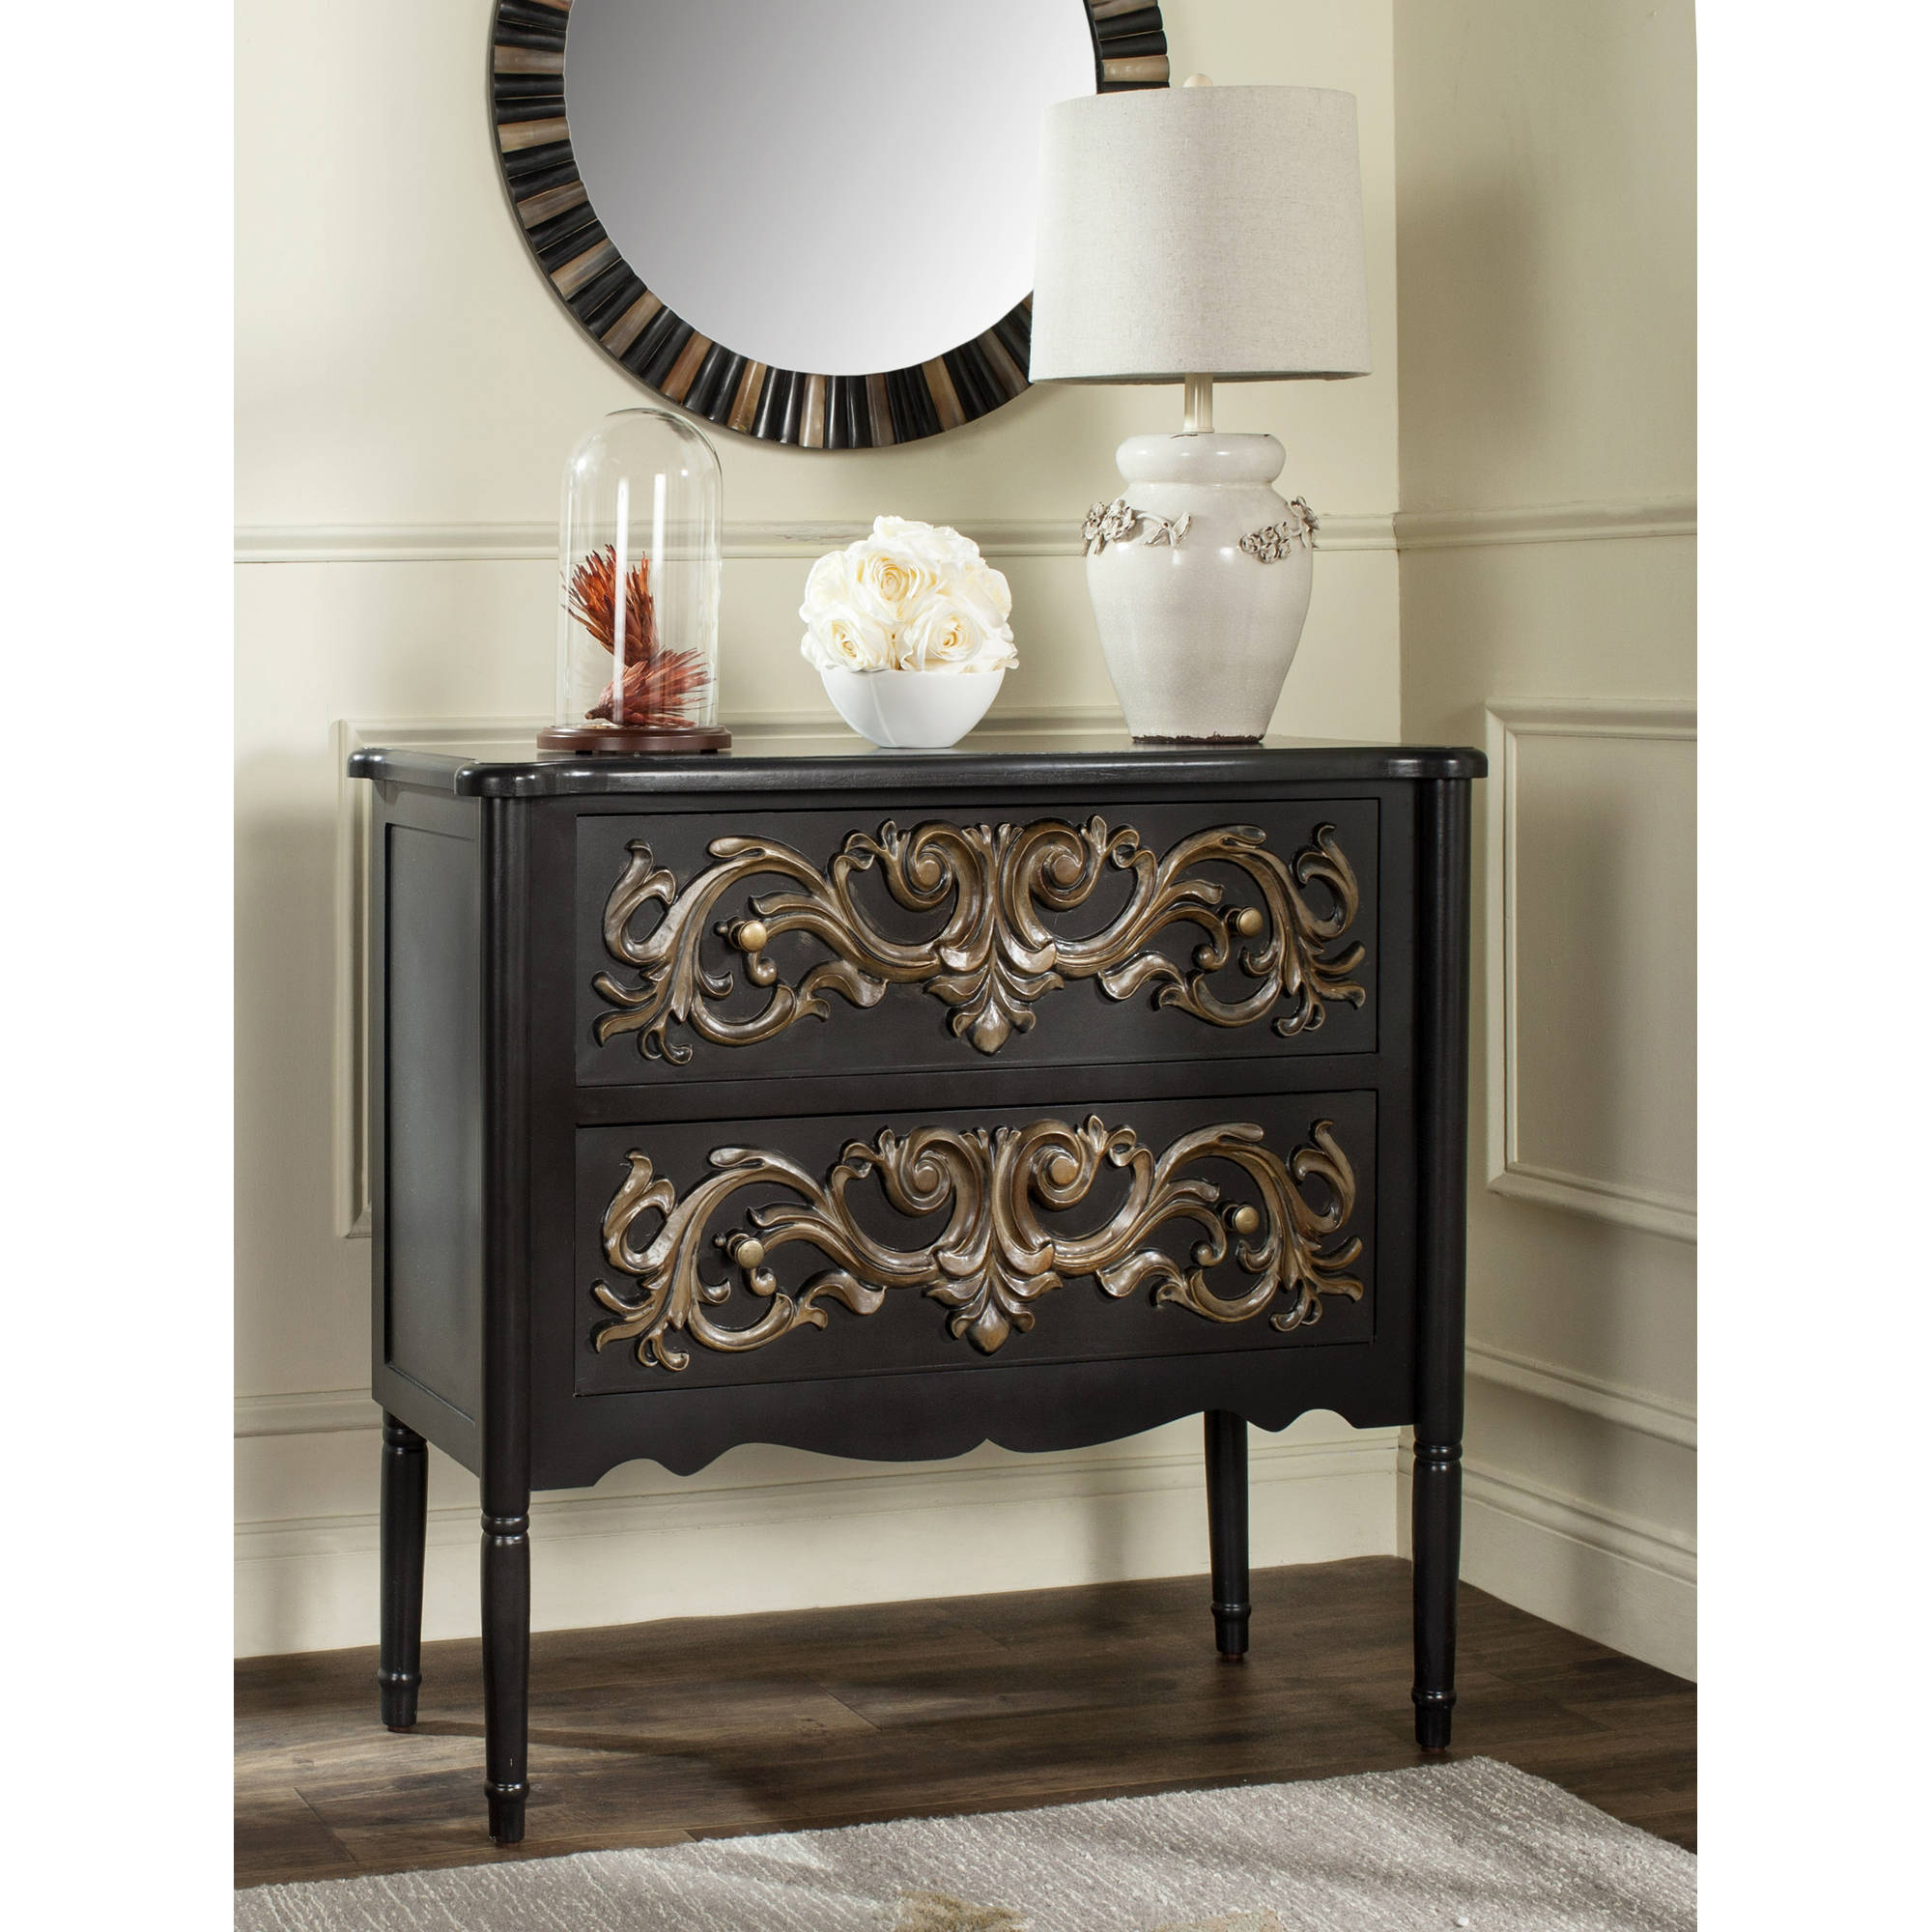 Safavieh Lennx 2-Drawer Storage Chest, Black/Gold